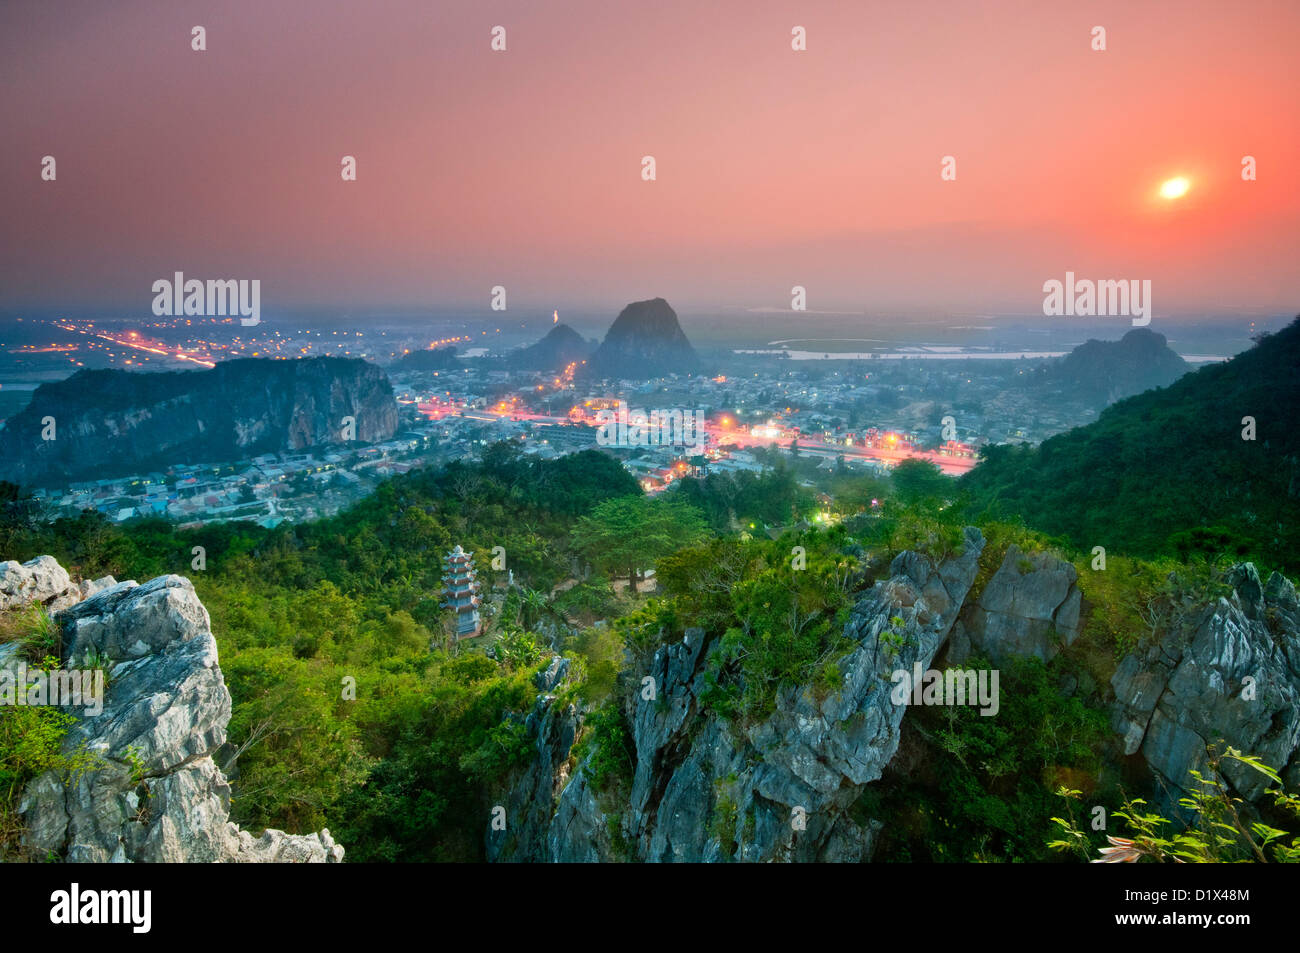 Sunset Looking down from summit. Thuy Son, Marble mountain (ngu hanh son), Vietnam - Stock Image